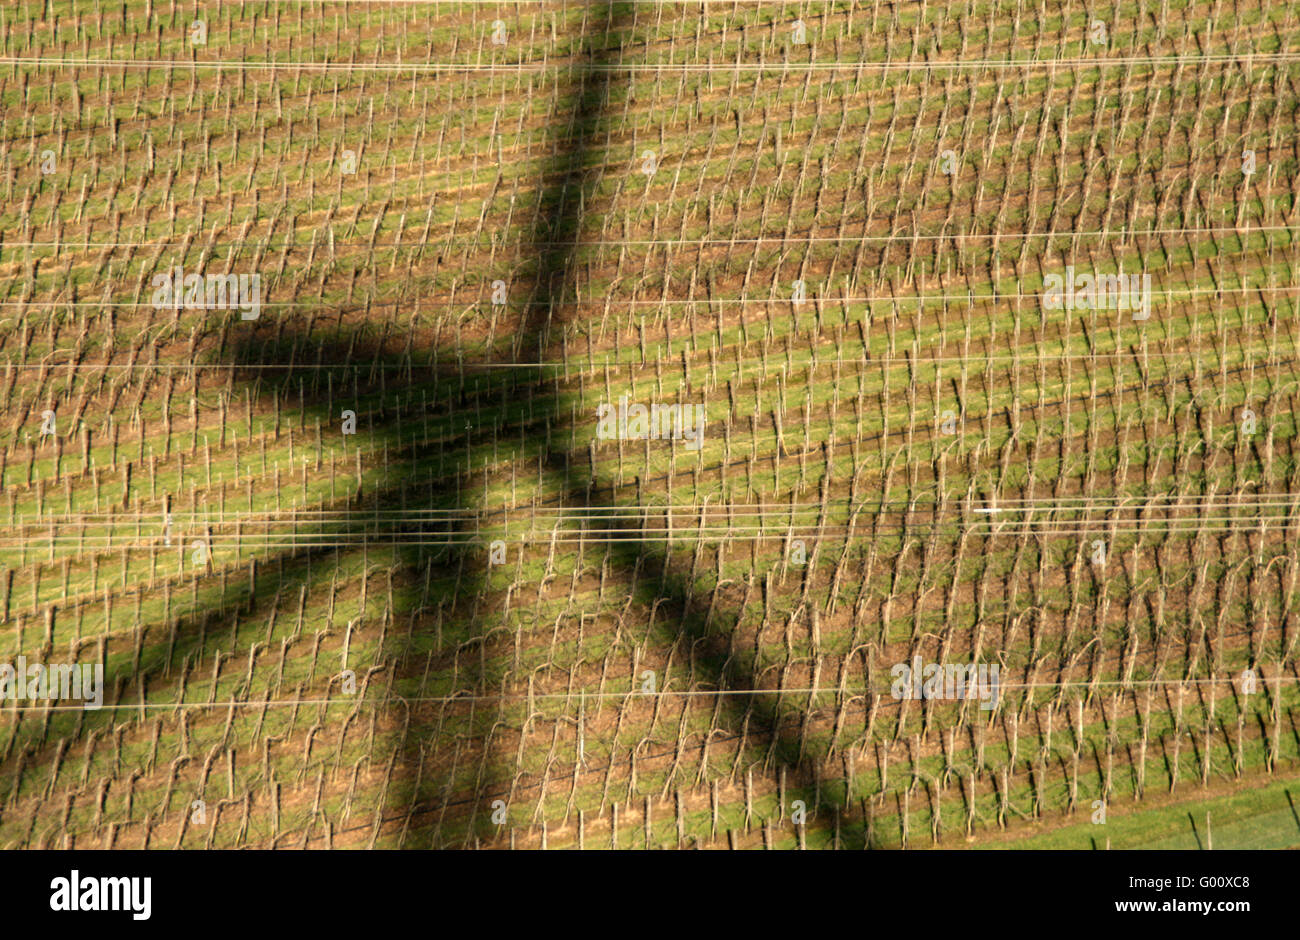 Shadow Of A Windmill / Windrad Schatten - Stock Image